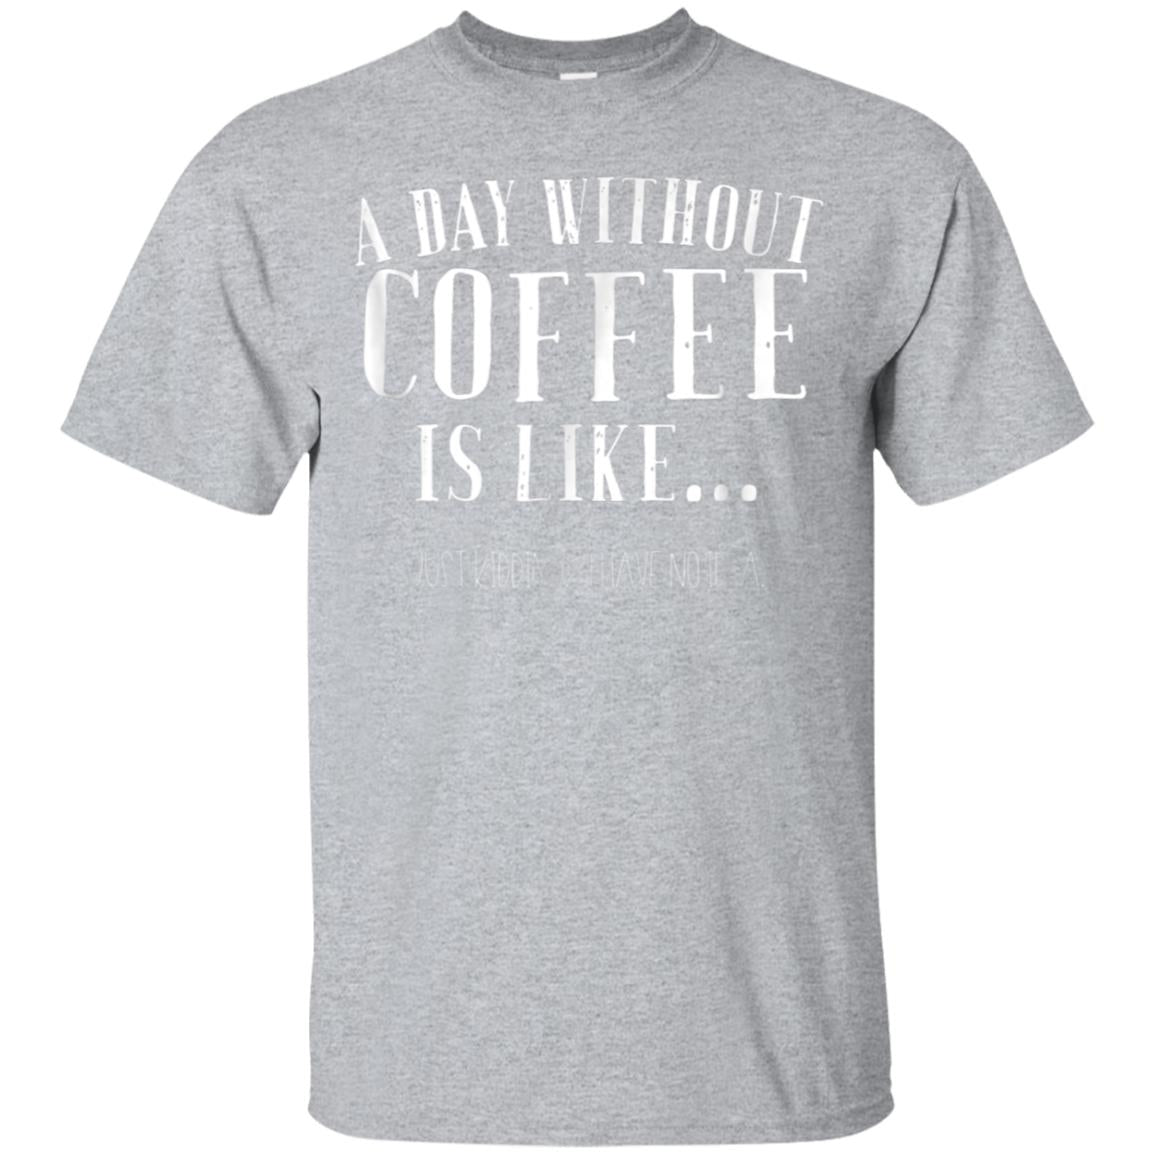 A Day Without Coffee Is Like I Have No Idea Funny Shirt Tee 99promocode